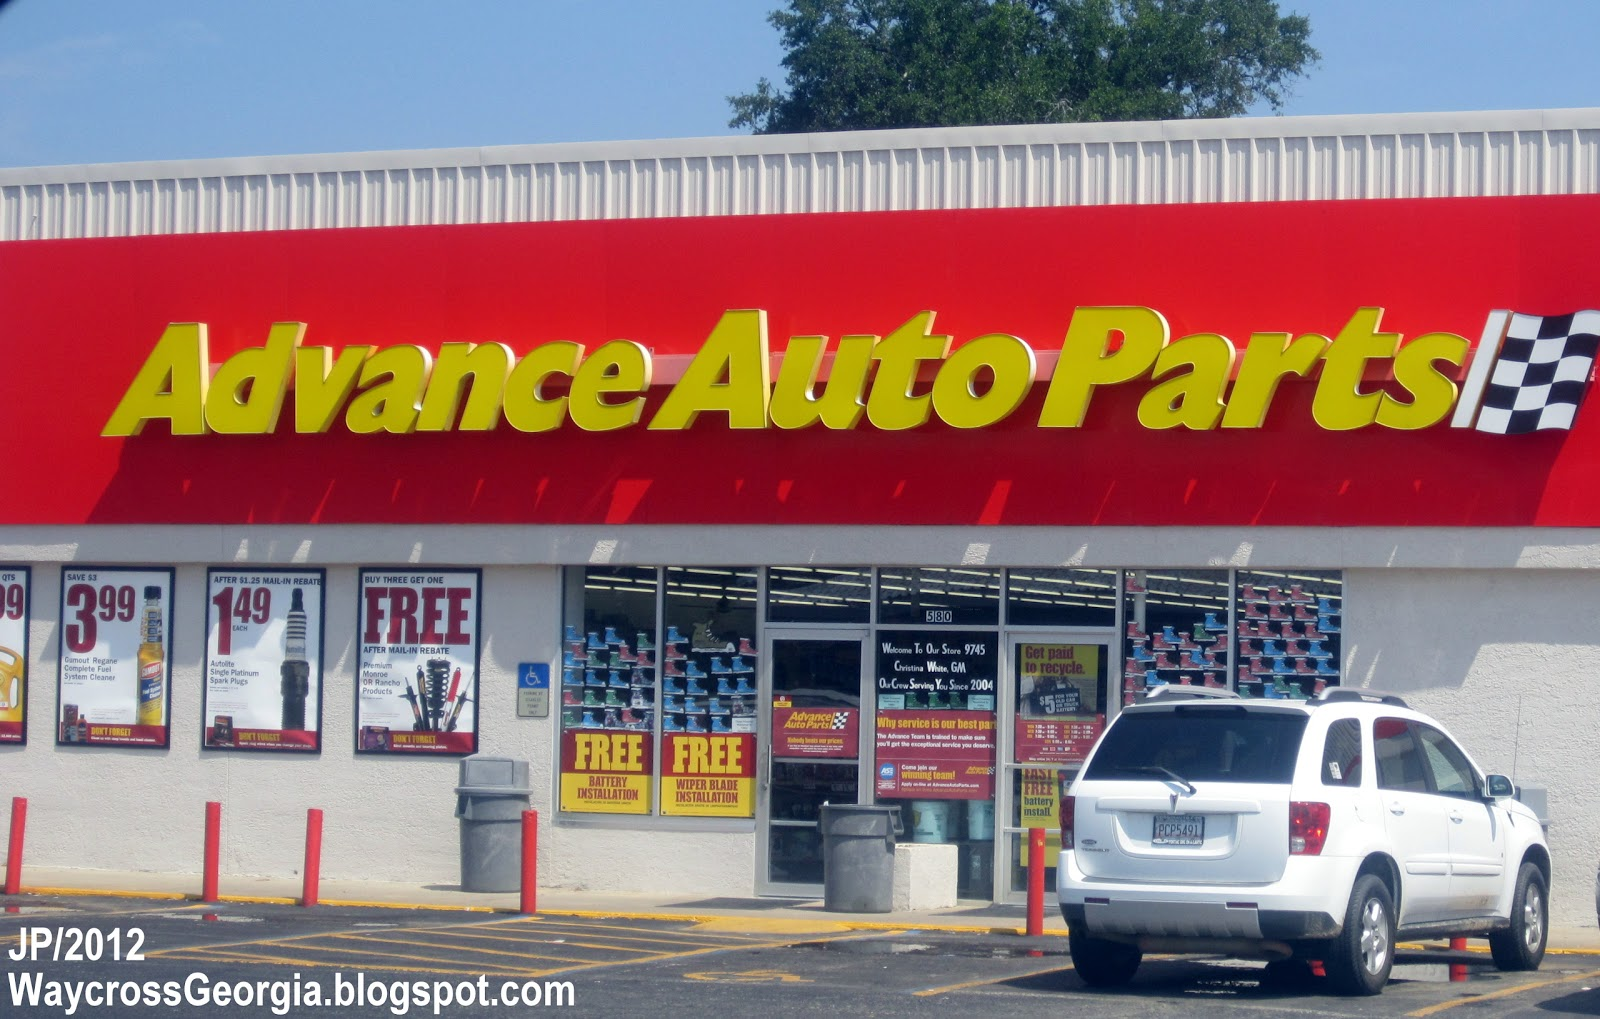 If you're looking for an auto parts store near me, NAPA Auto Parts has over 6, automotive part stores nationwide. And with an inventory of over , parts, in-stock, finding parts or tools for your car, truck, and heavy duty parts, accessories couldn't be easier.